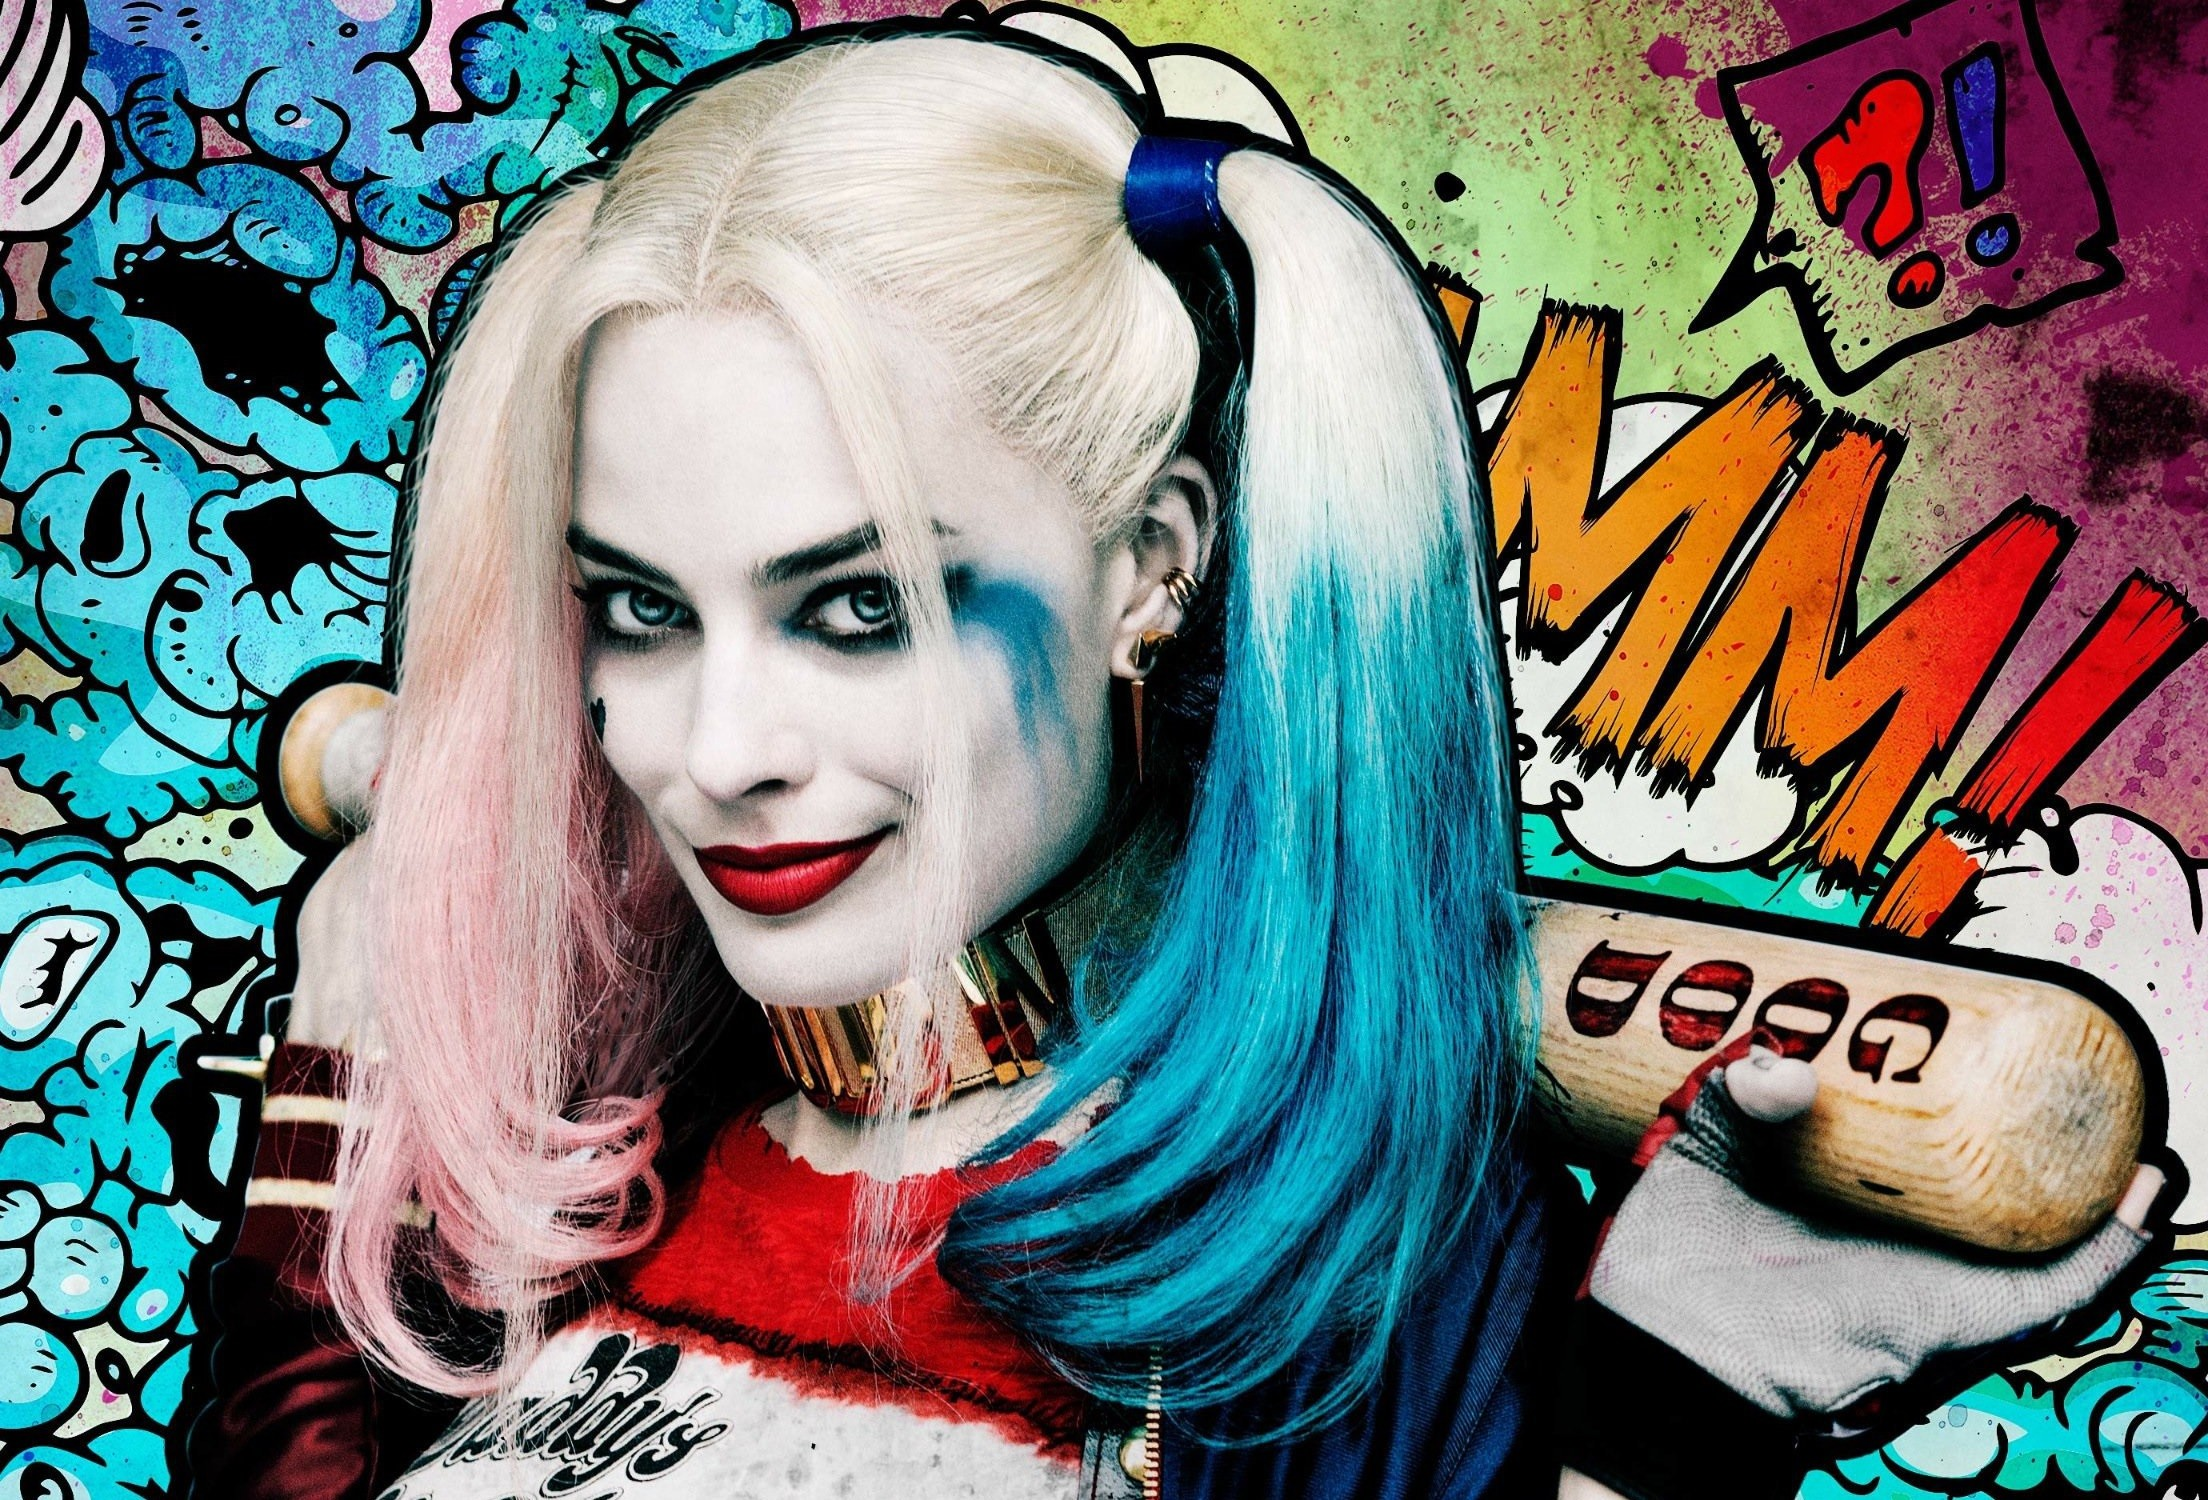 2208x1500 <b>Suicide Squad</b> Wallpapers HD Backgrounds, Images, Pics